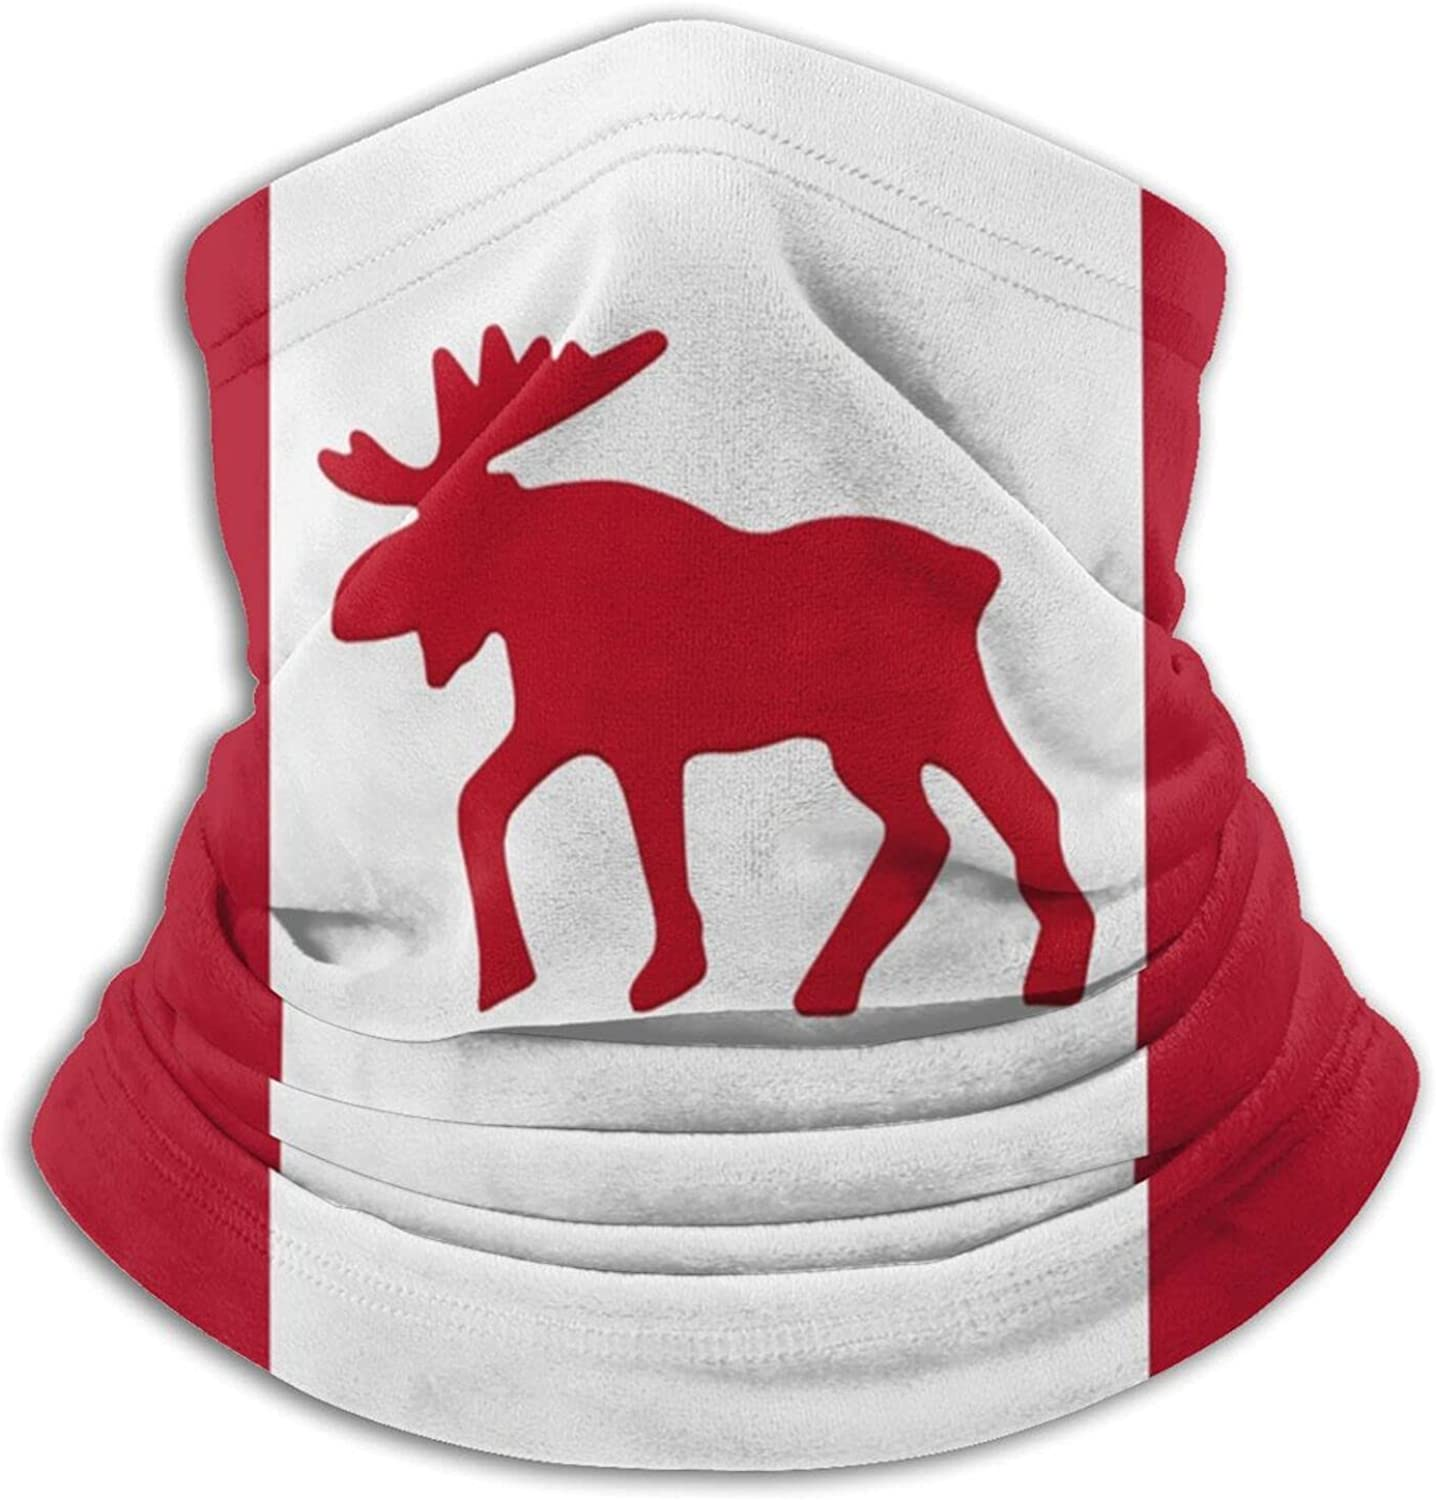 Canada moose flag canadian maple leaf unisex winter neck gaiter face cover mask, windproof balaclava scarf for fishing, running & hiking